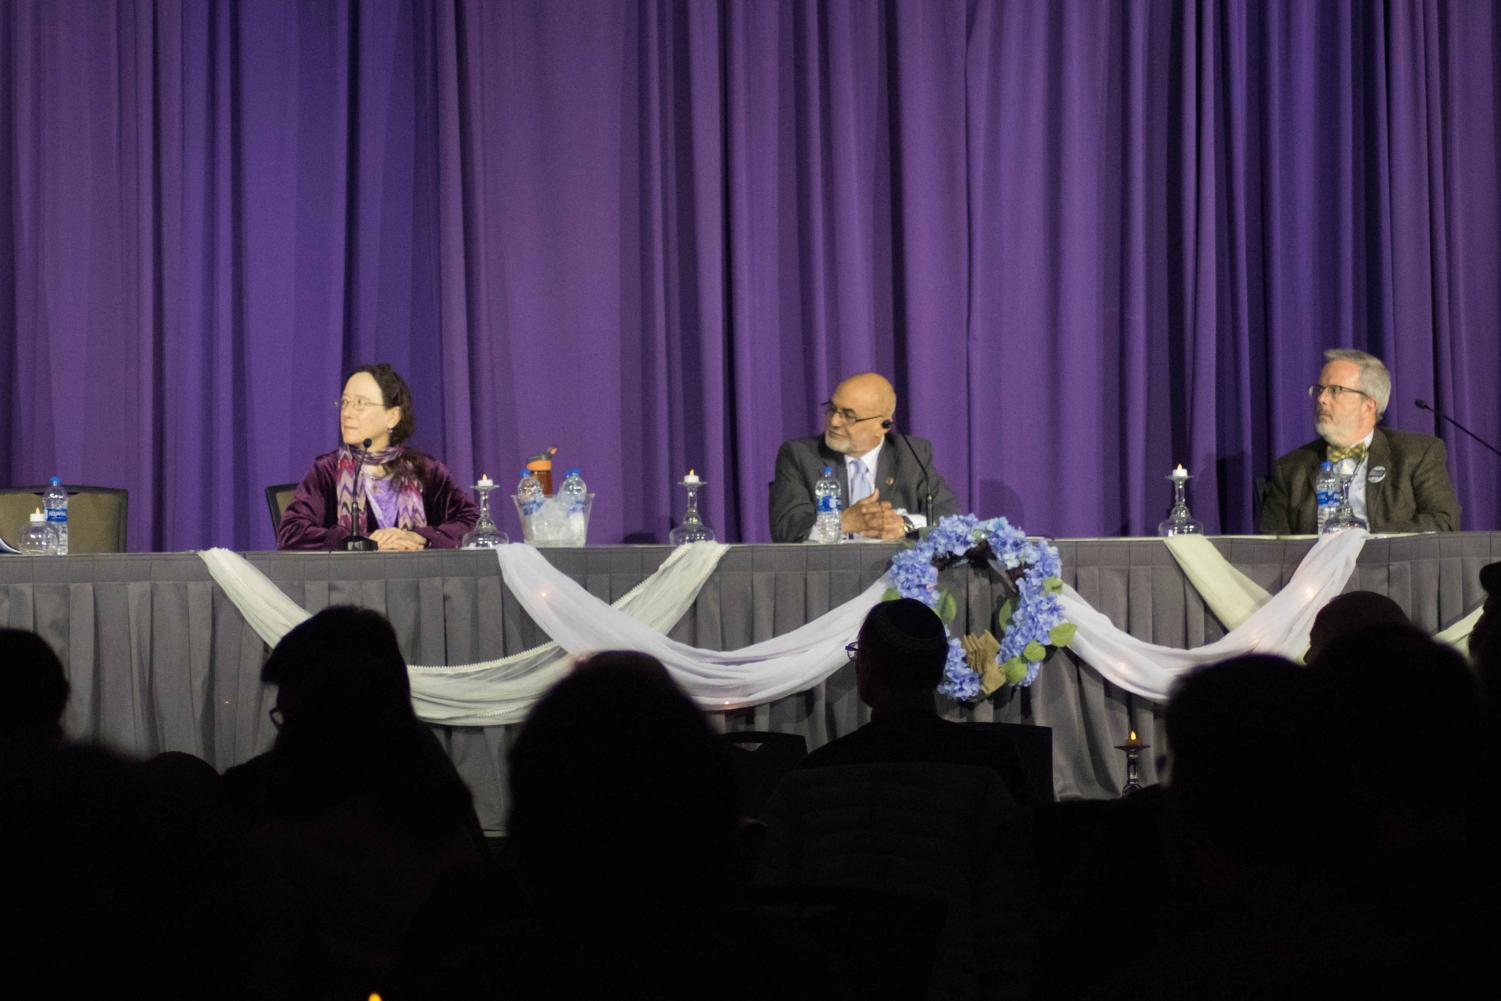 Rabbi Rebecca Kushner, Imam Mohammed F. Fahmy and Reverend David Glenn-Burns spoke on the MSU interfaith panel.